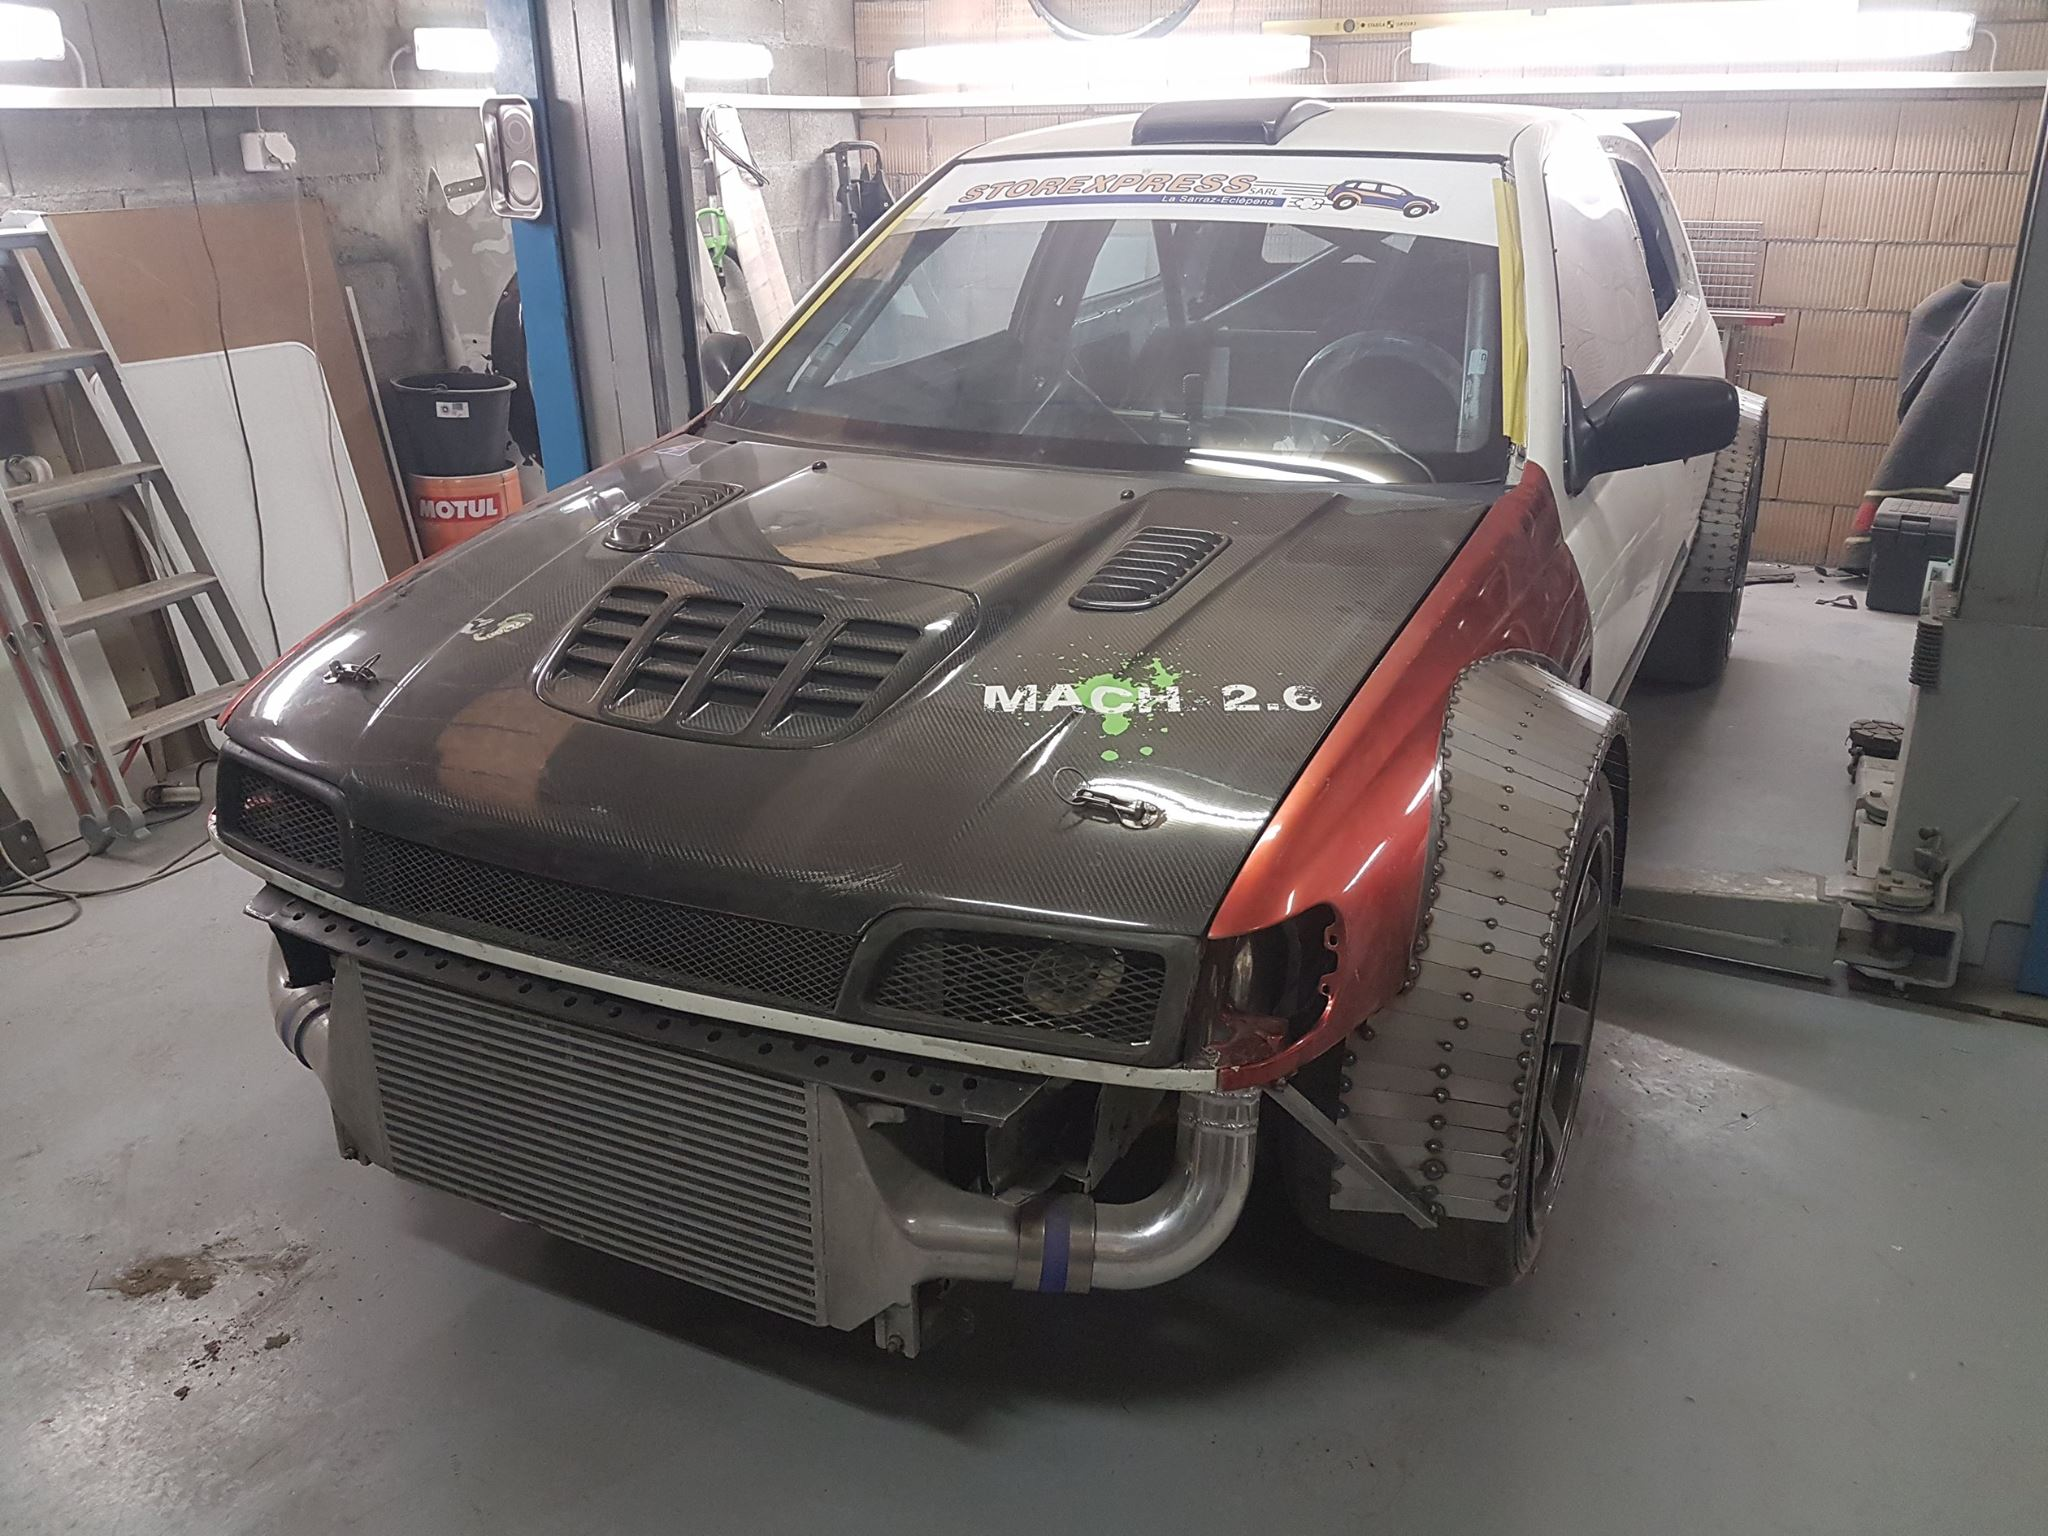 nissan pulsar gti r with a rb26 and r32 drivetrain. Black Bedroom Furniture Sets. Home Design Ideas